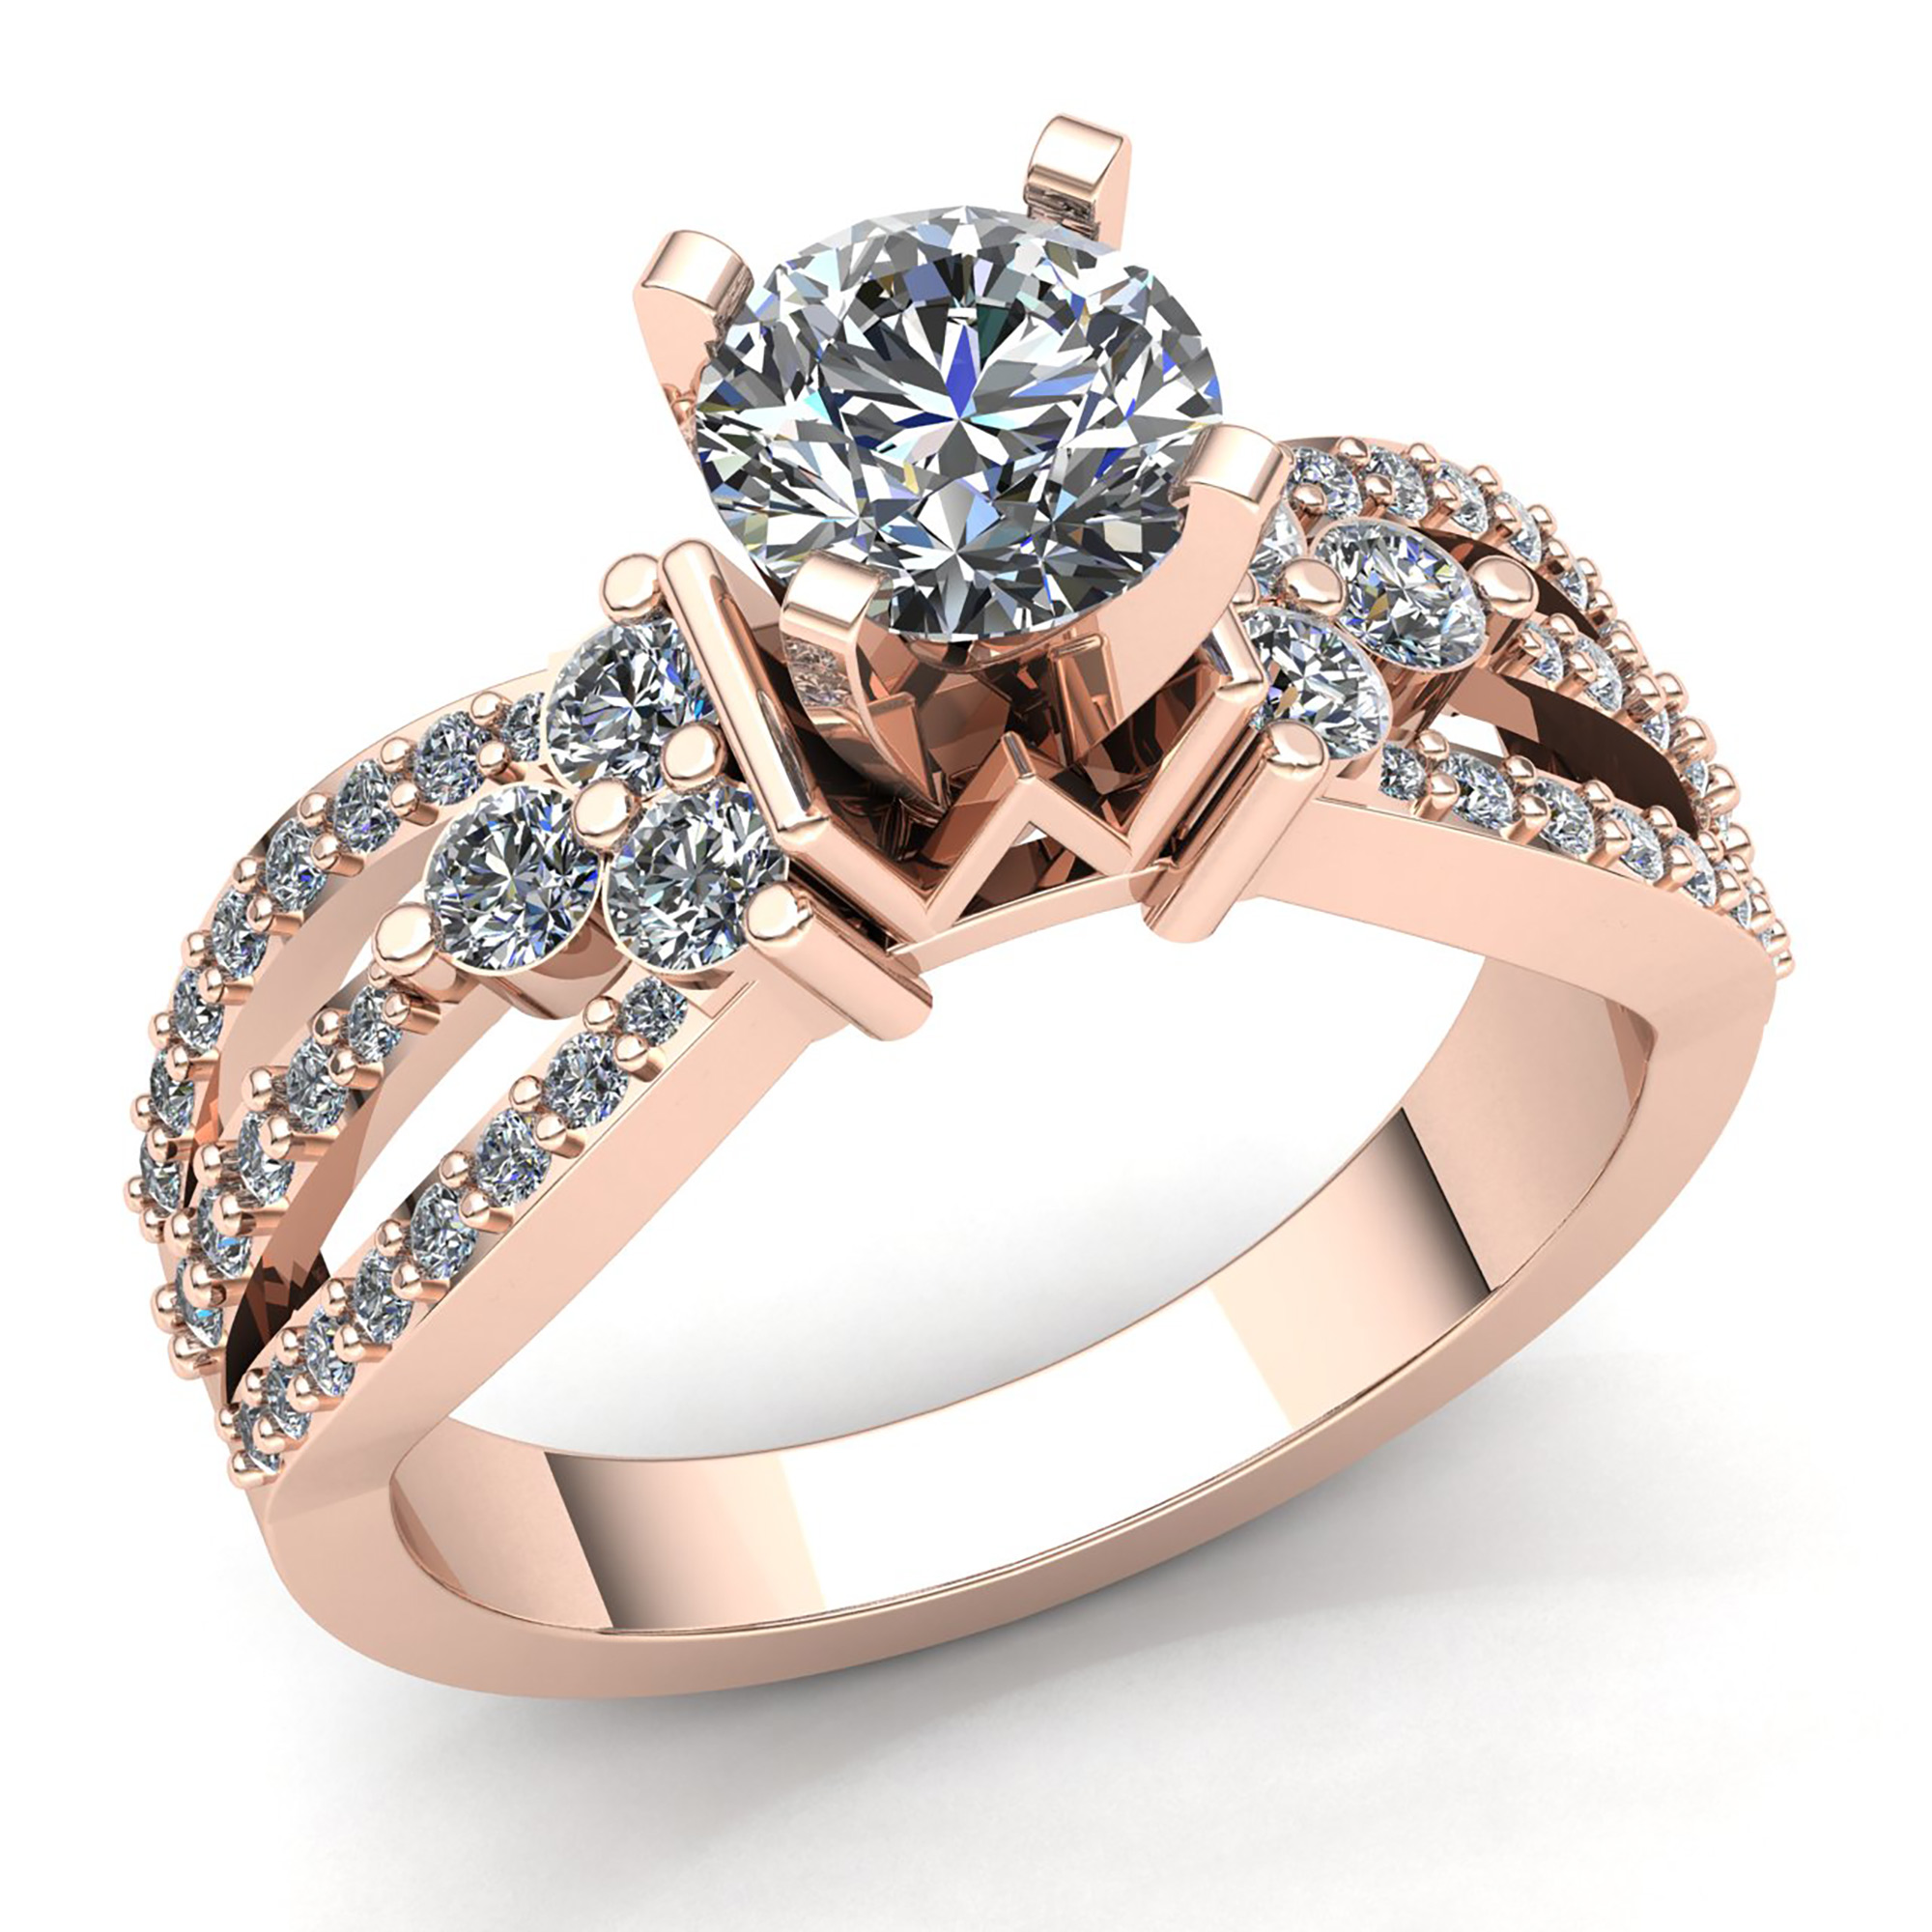 cloudy allen bought i how a ring engagement from james true hearts diamond